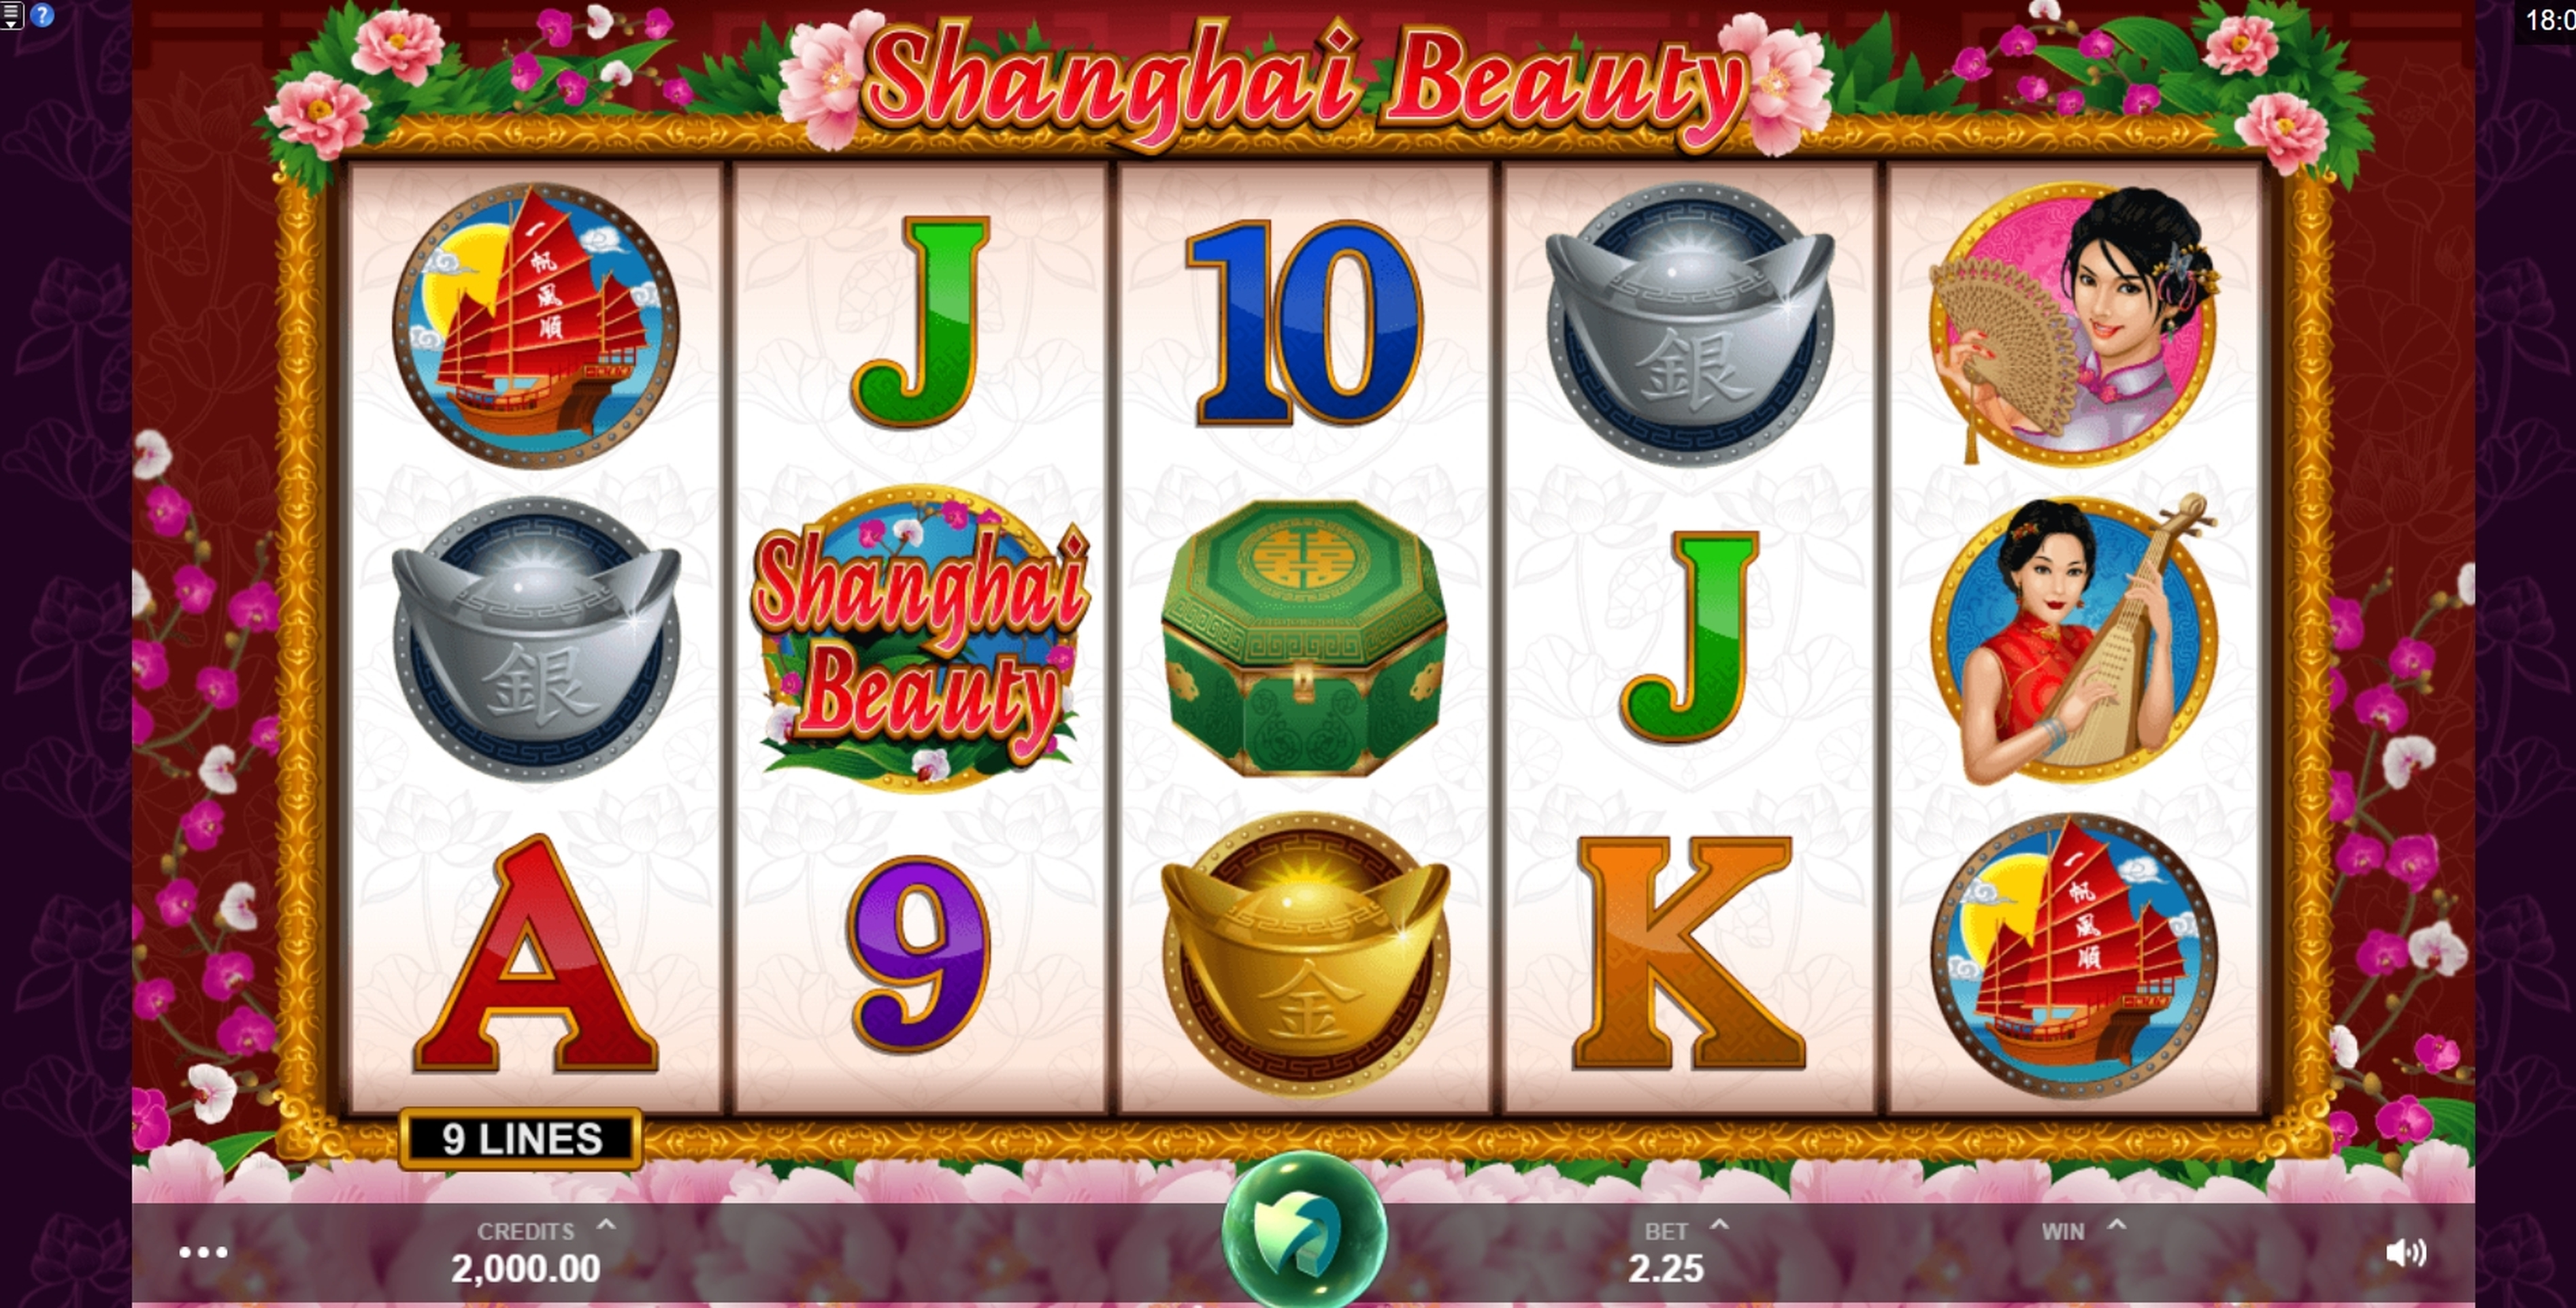 Reels in Shanghai Beauty Slot Game by MahiGaming